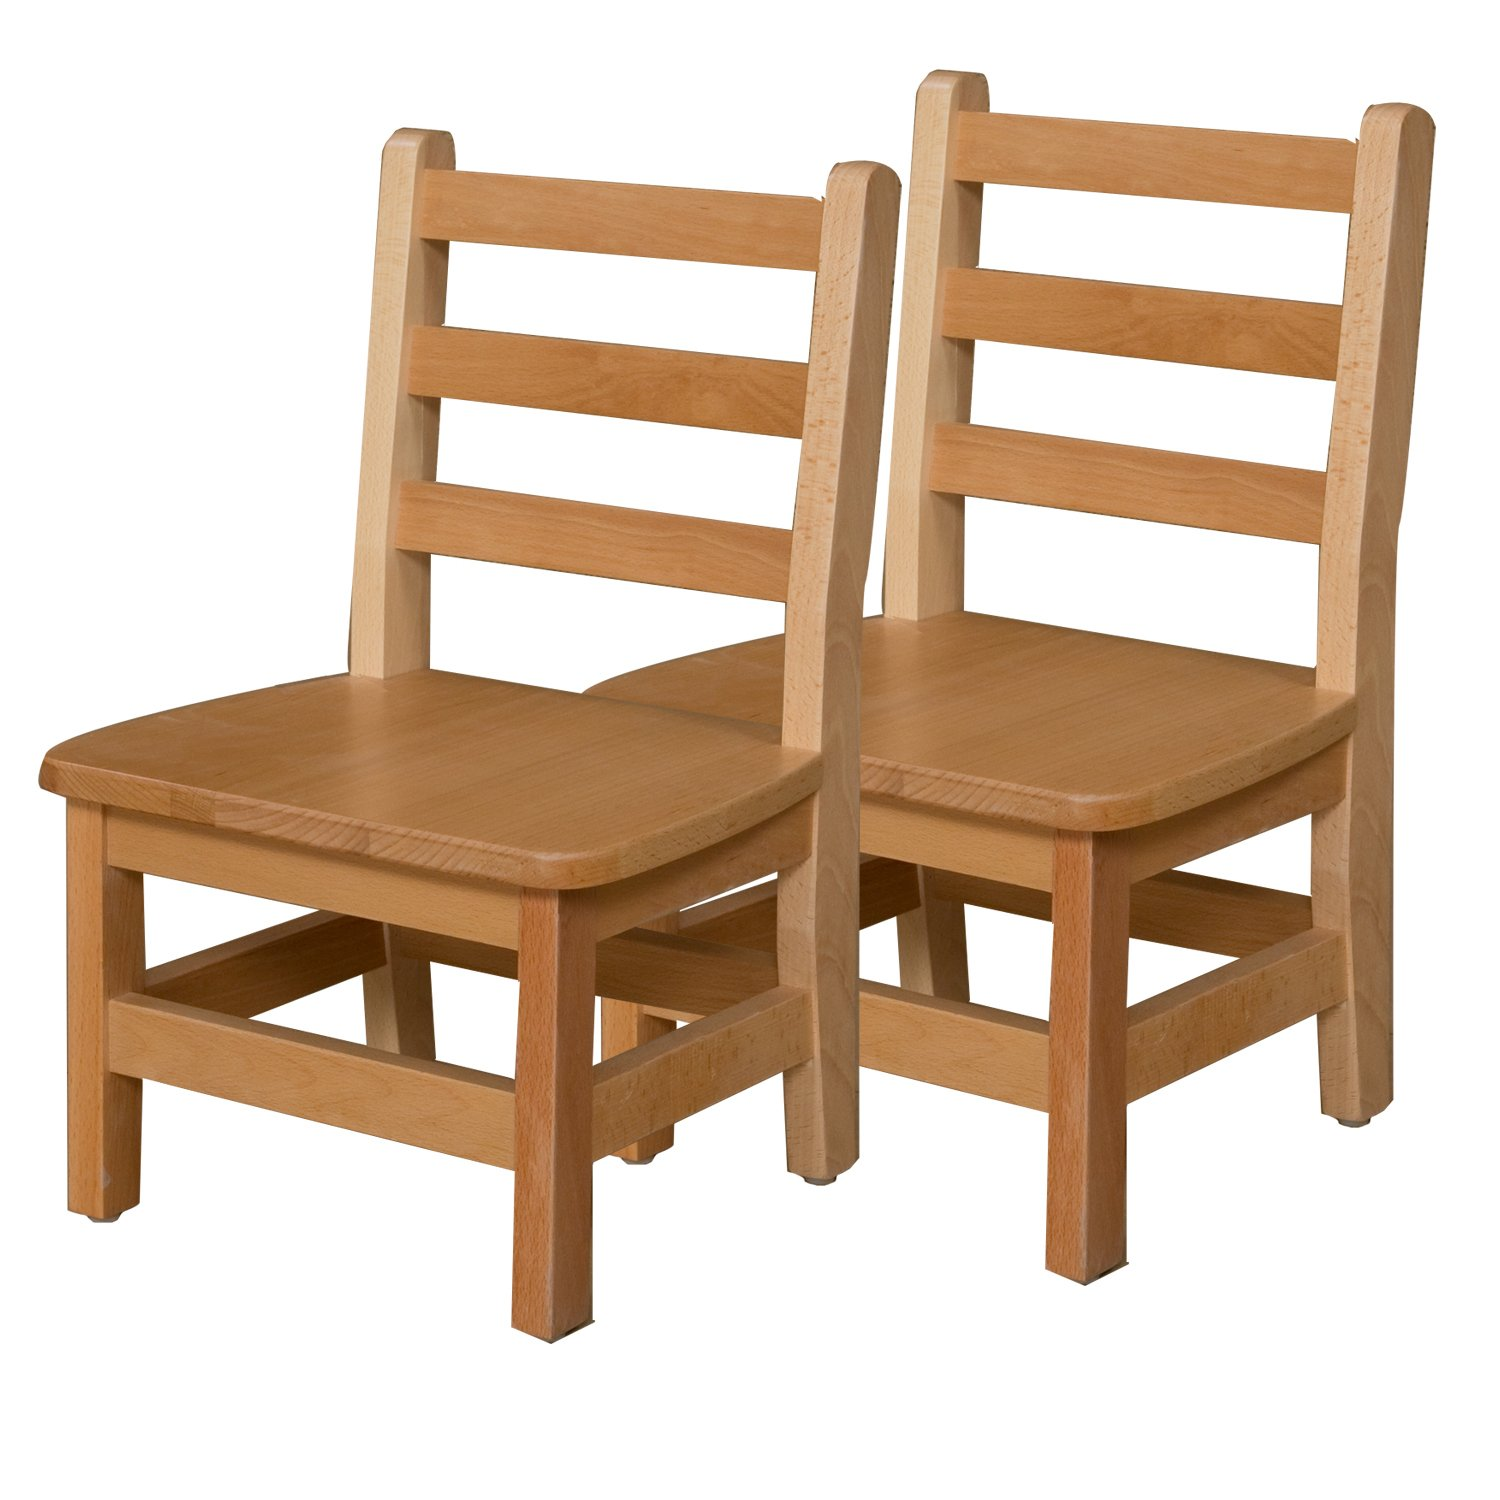 Wood Designs WD81002 10'' Chair, Carton of (2)